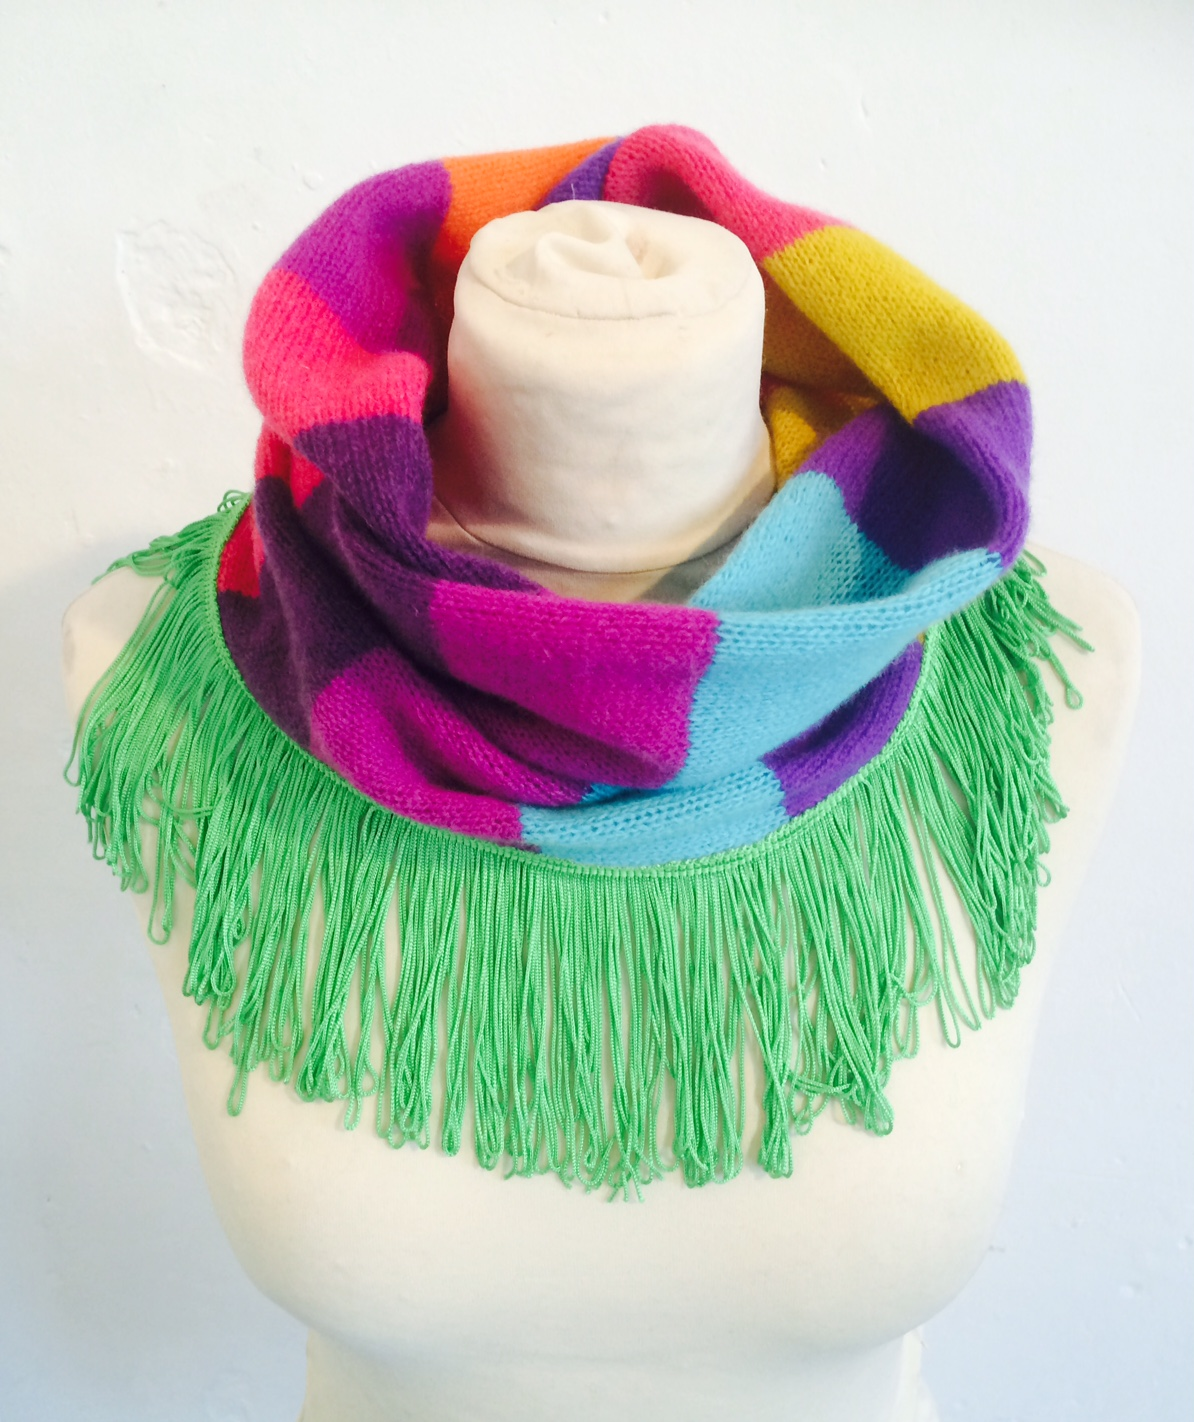 Rainbow Snood with Fringe Trim